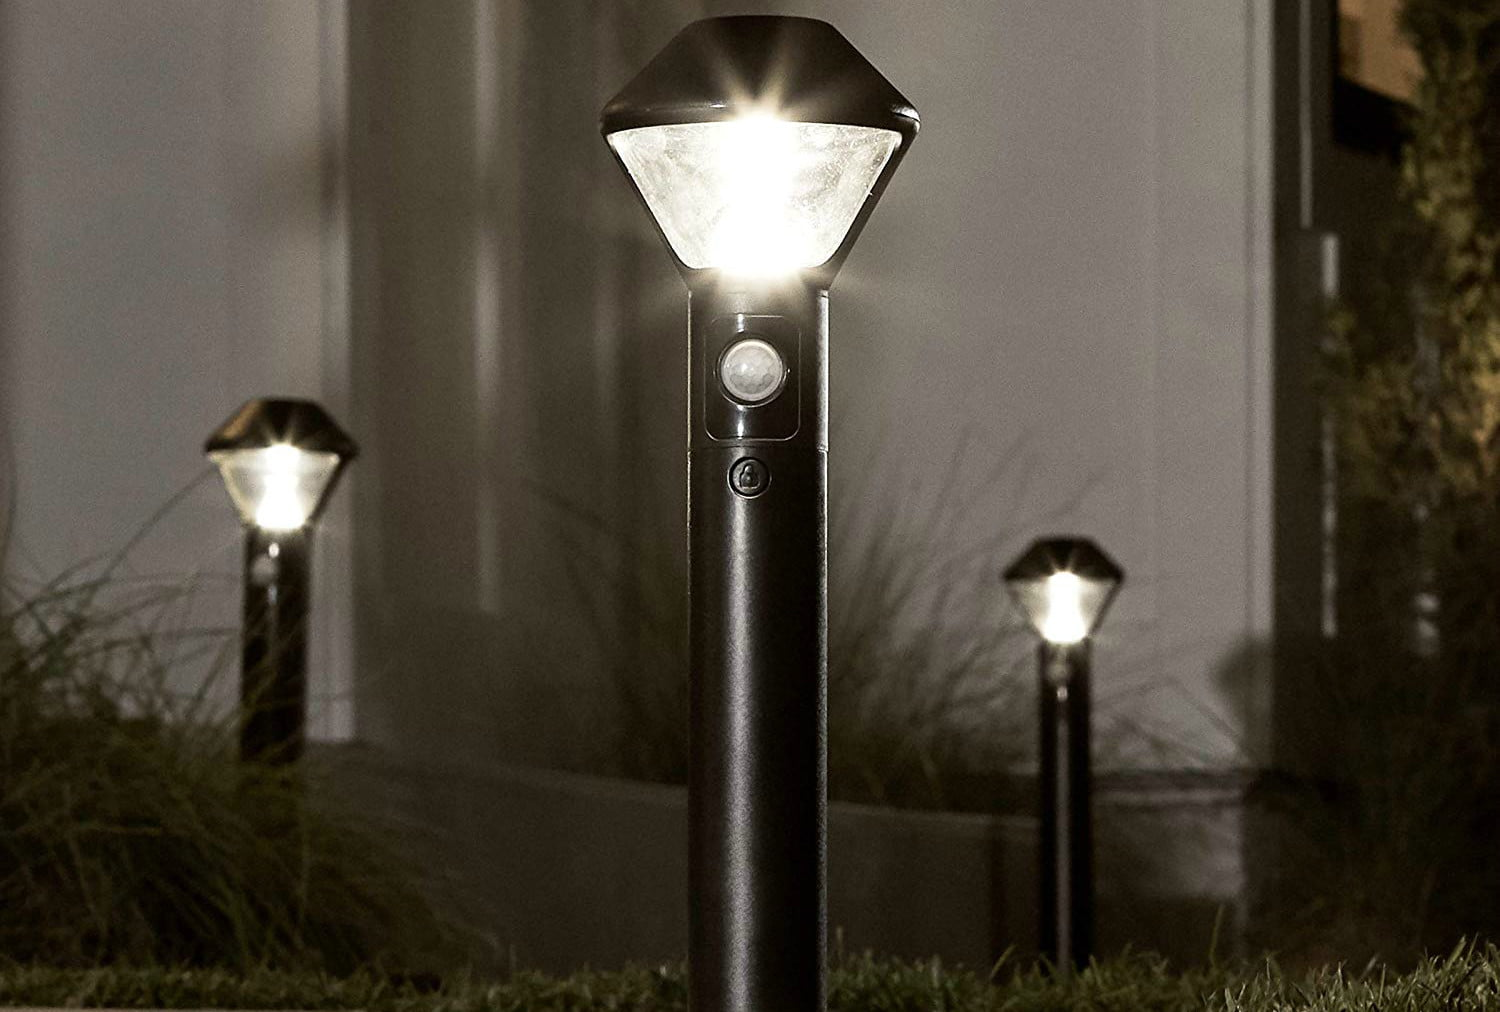 Save Up to 30% on Ring's New Smart Lighting with these